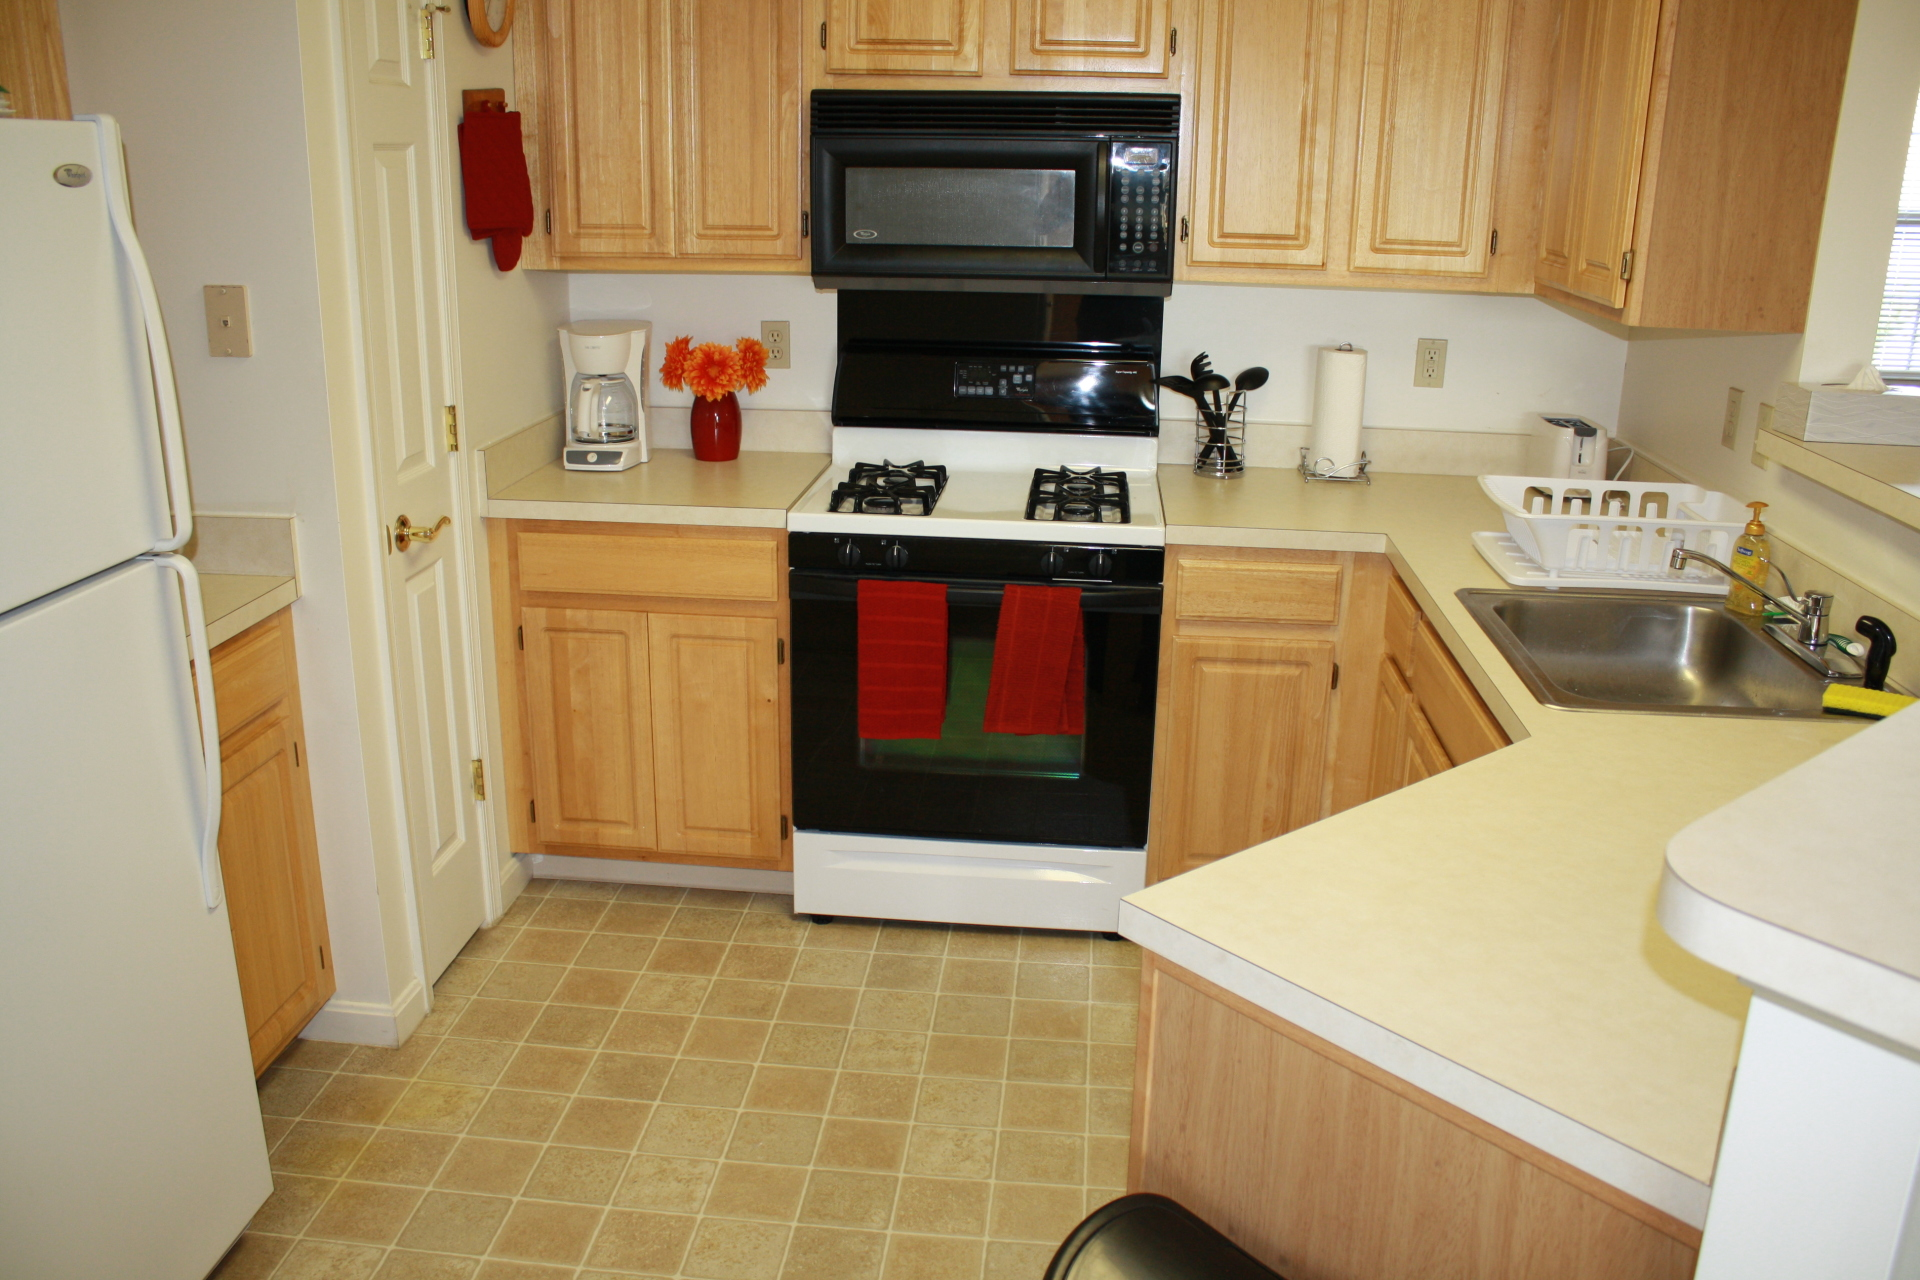 Executive housing in Hershey Pennsylvania